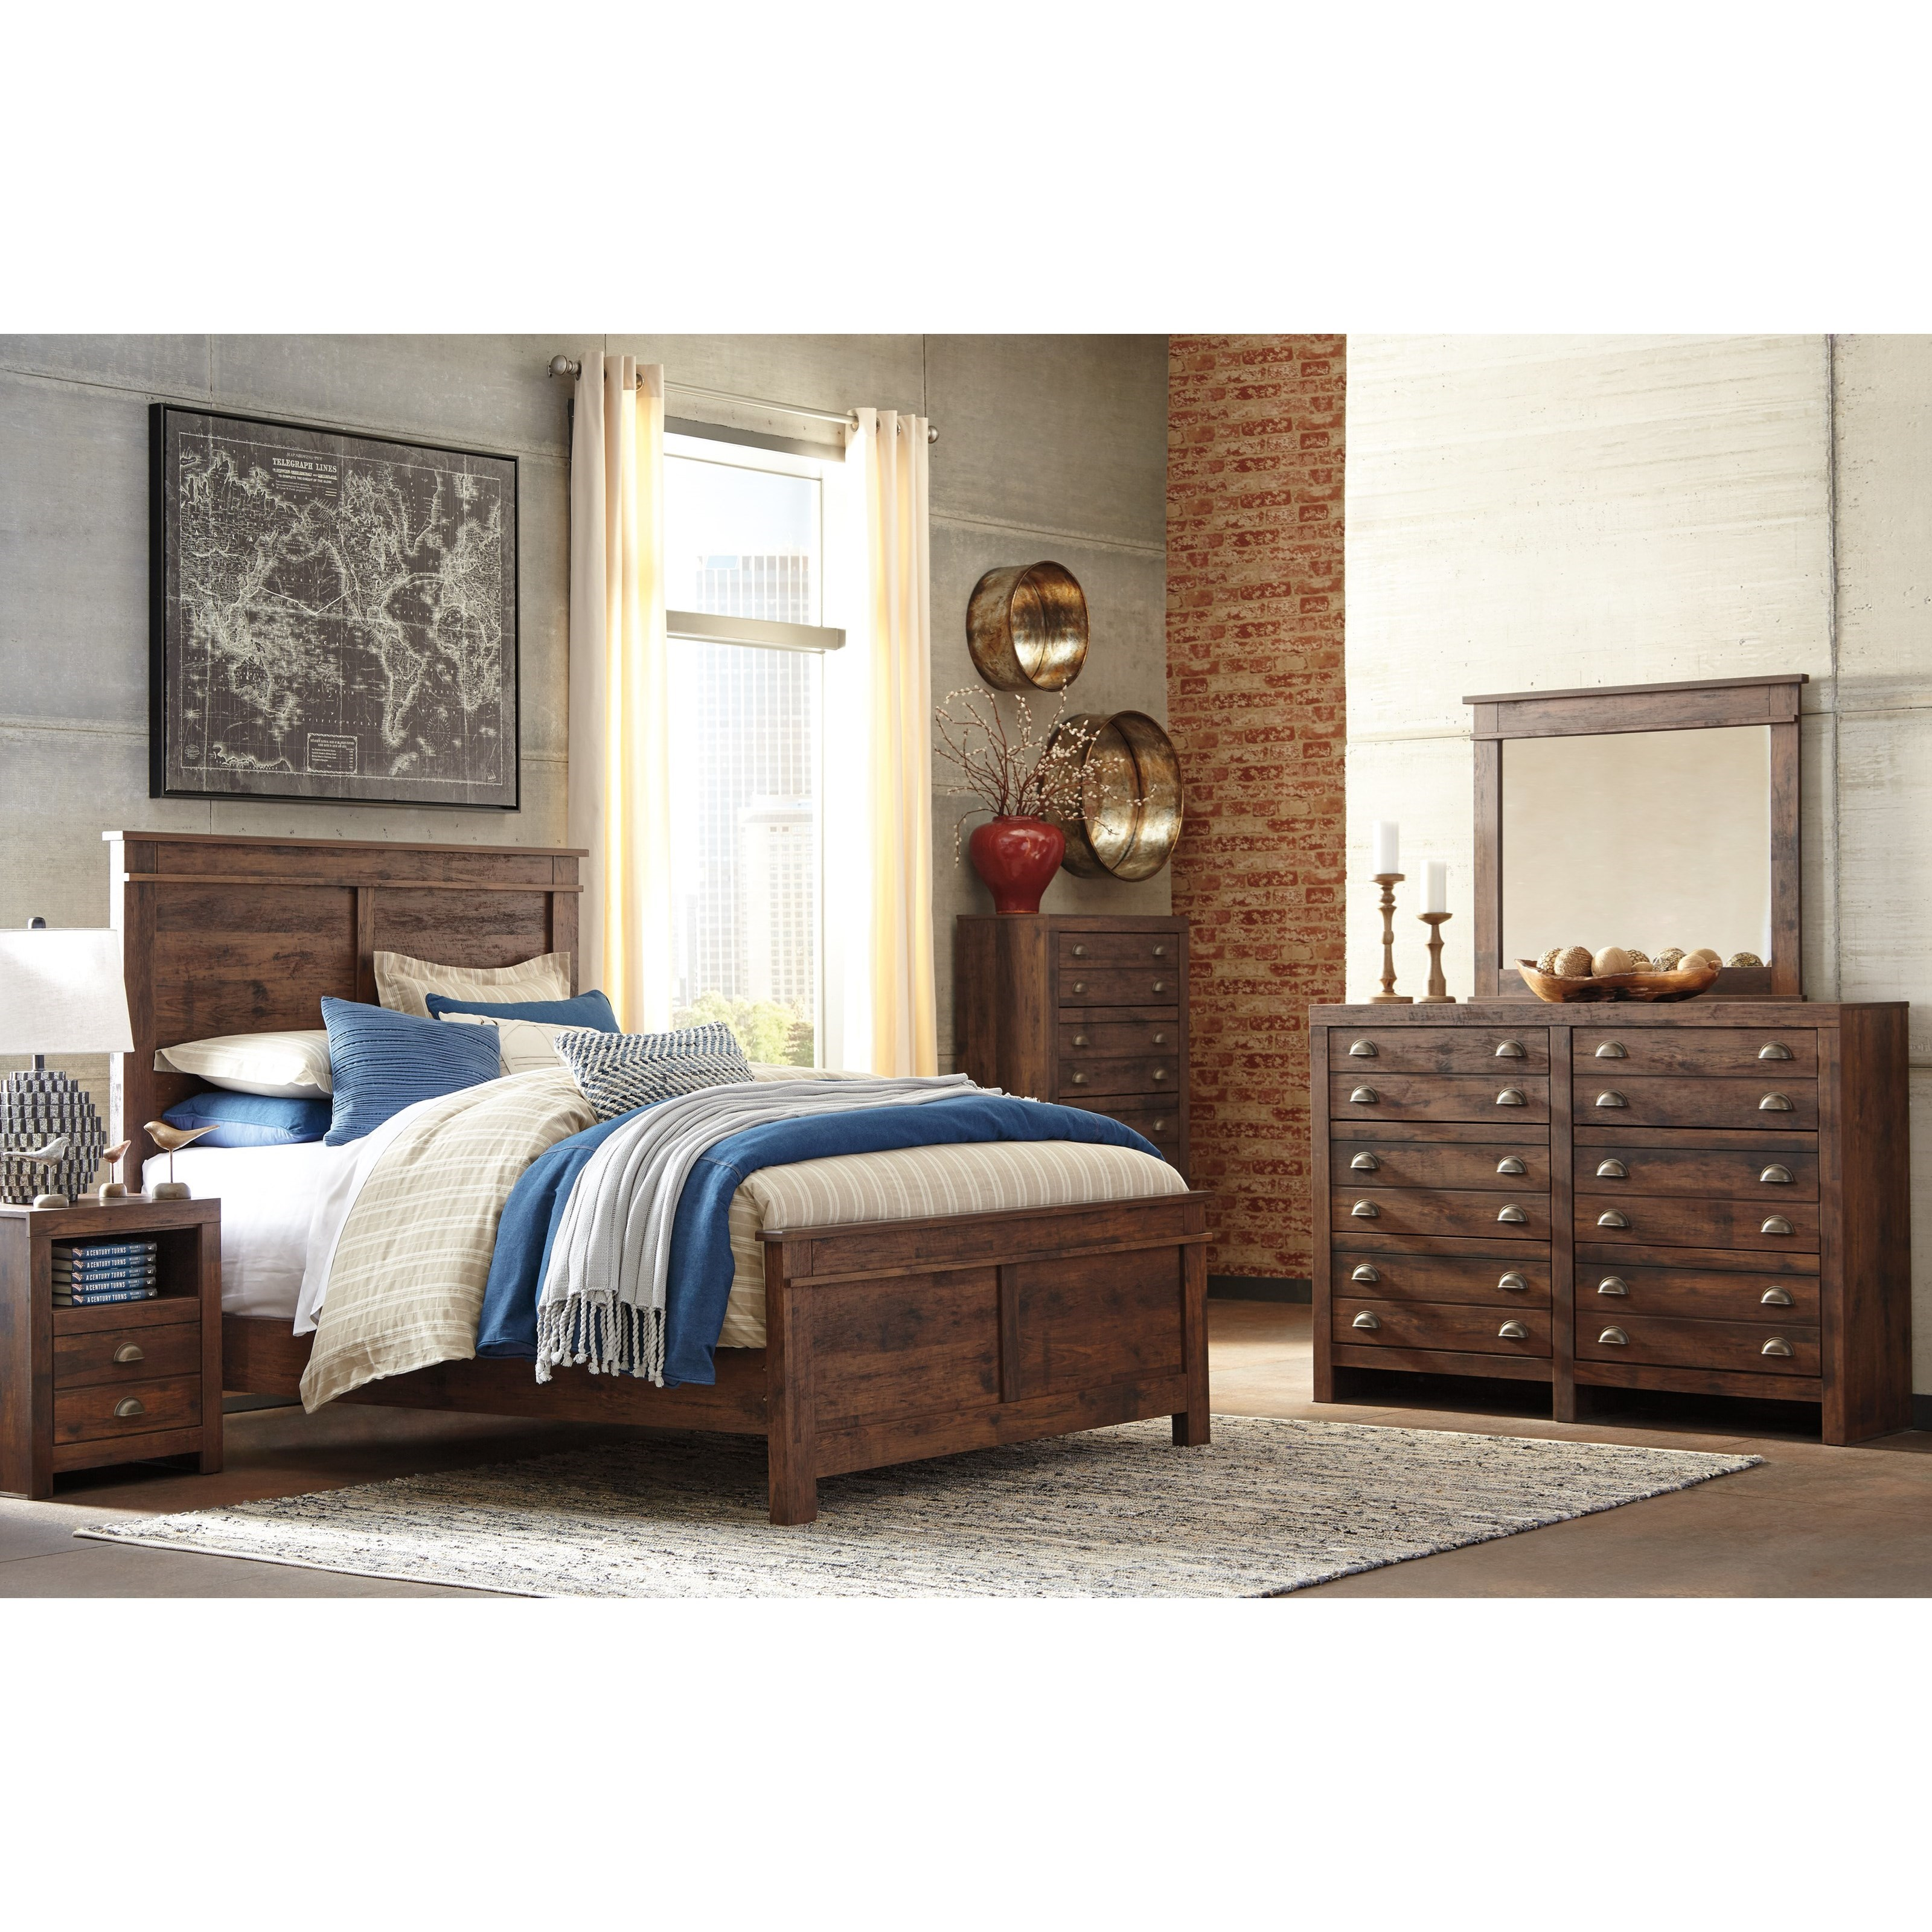 Signature Design by Ashley Hammerstead Queen Bedroom Group - Item Number: B407 Q Bedroom Group 2